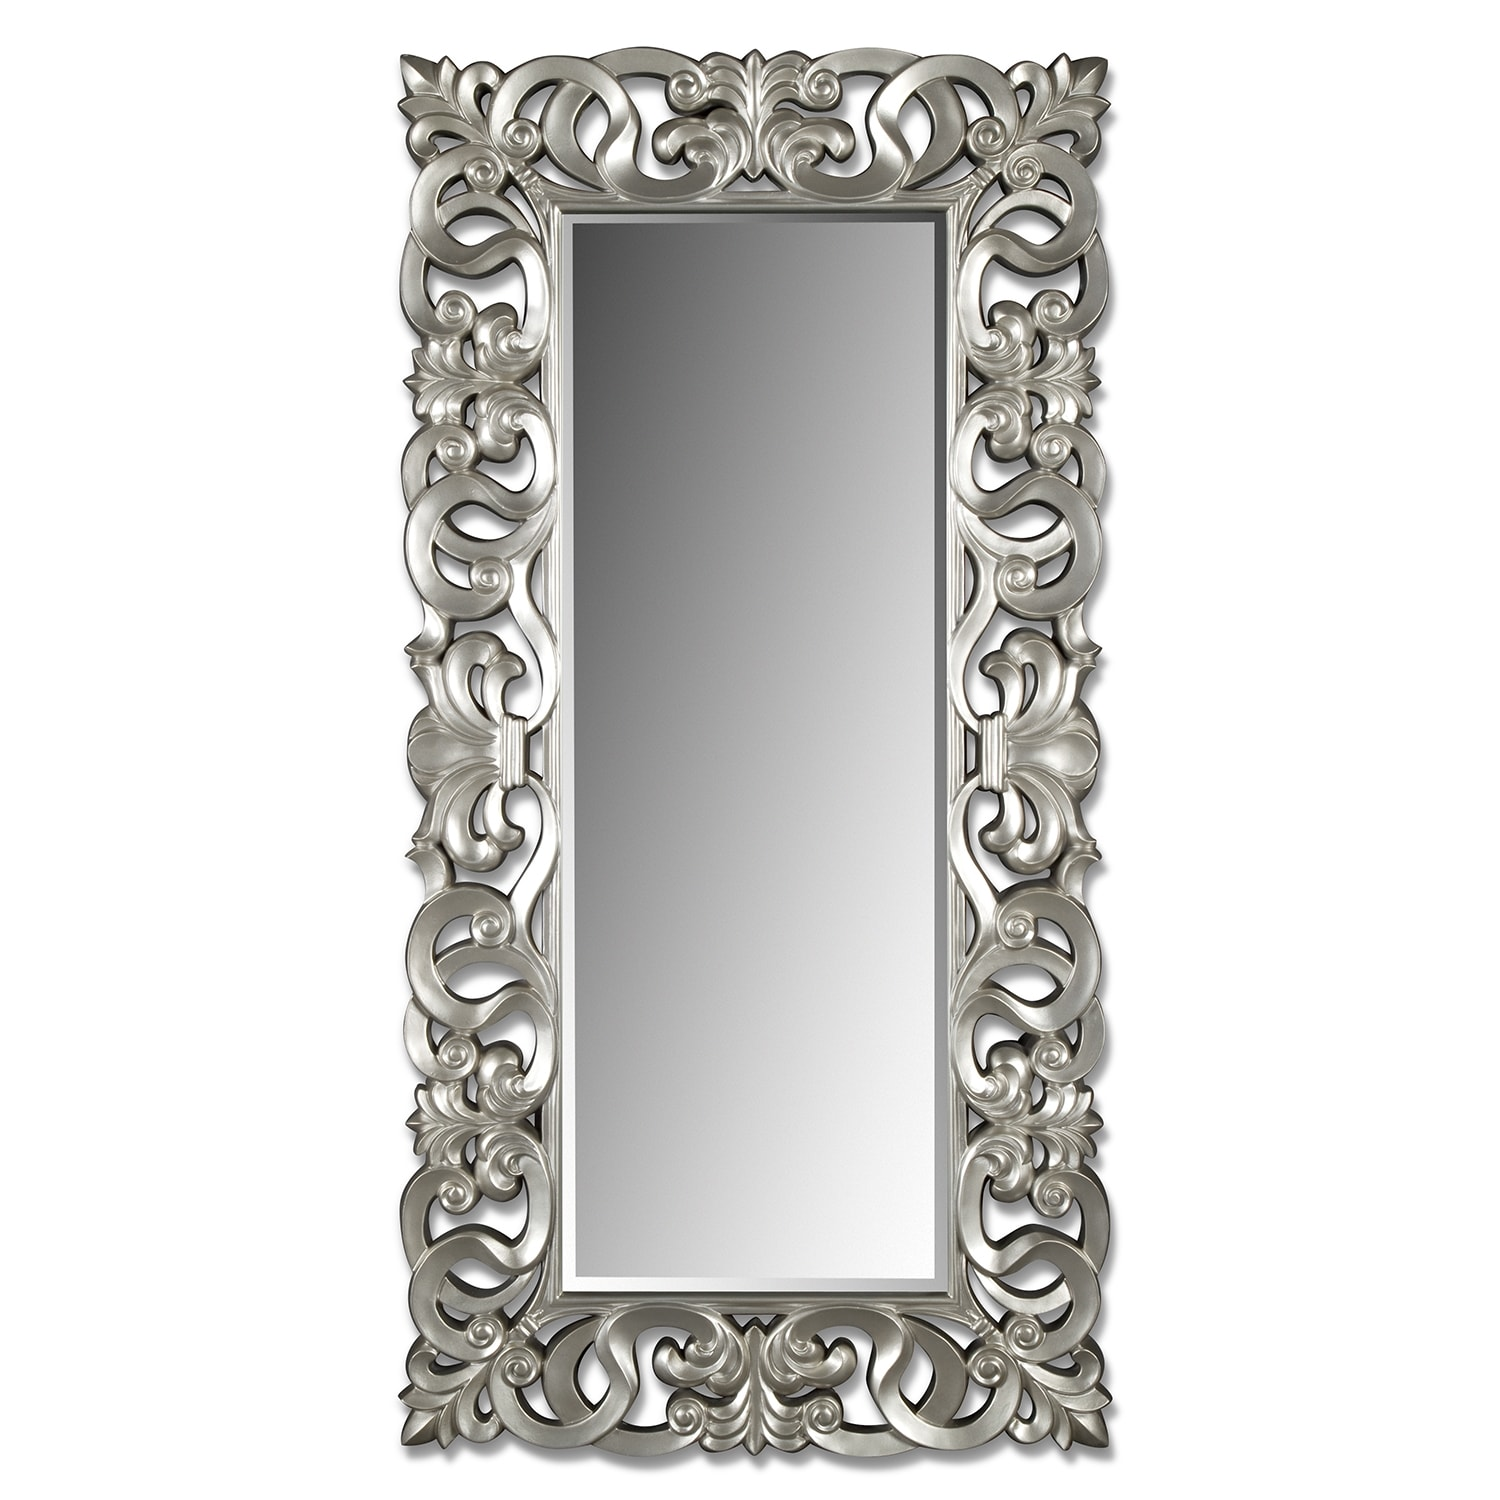 Silver Scroll Mirror Value City Furniture : 297285 from www.valuecityfurniture.com size 1500 x 1500 jpeg 685kB